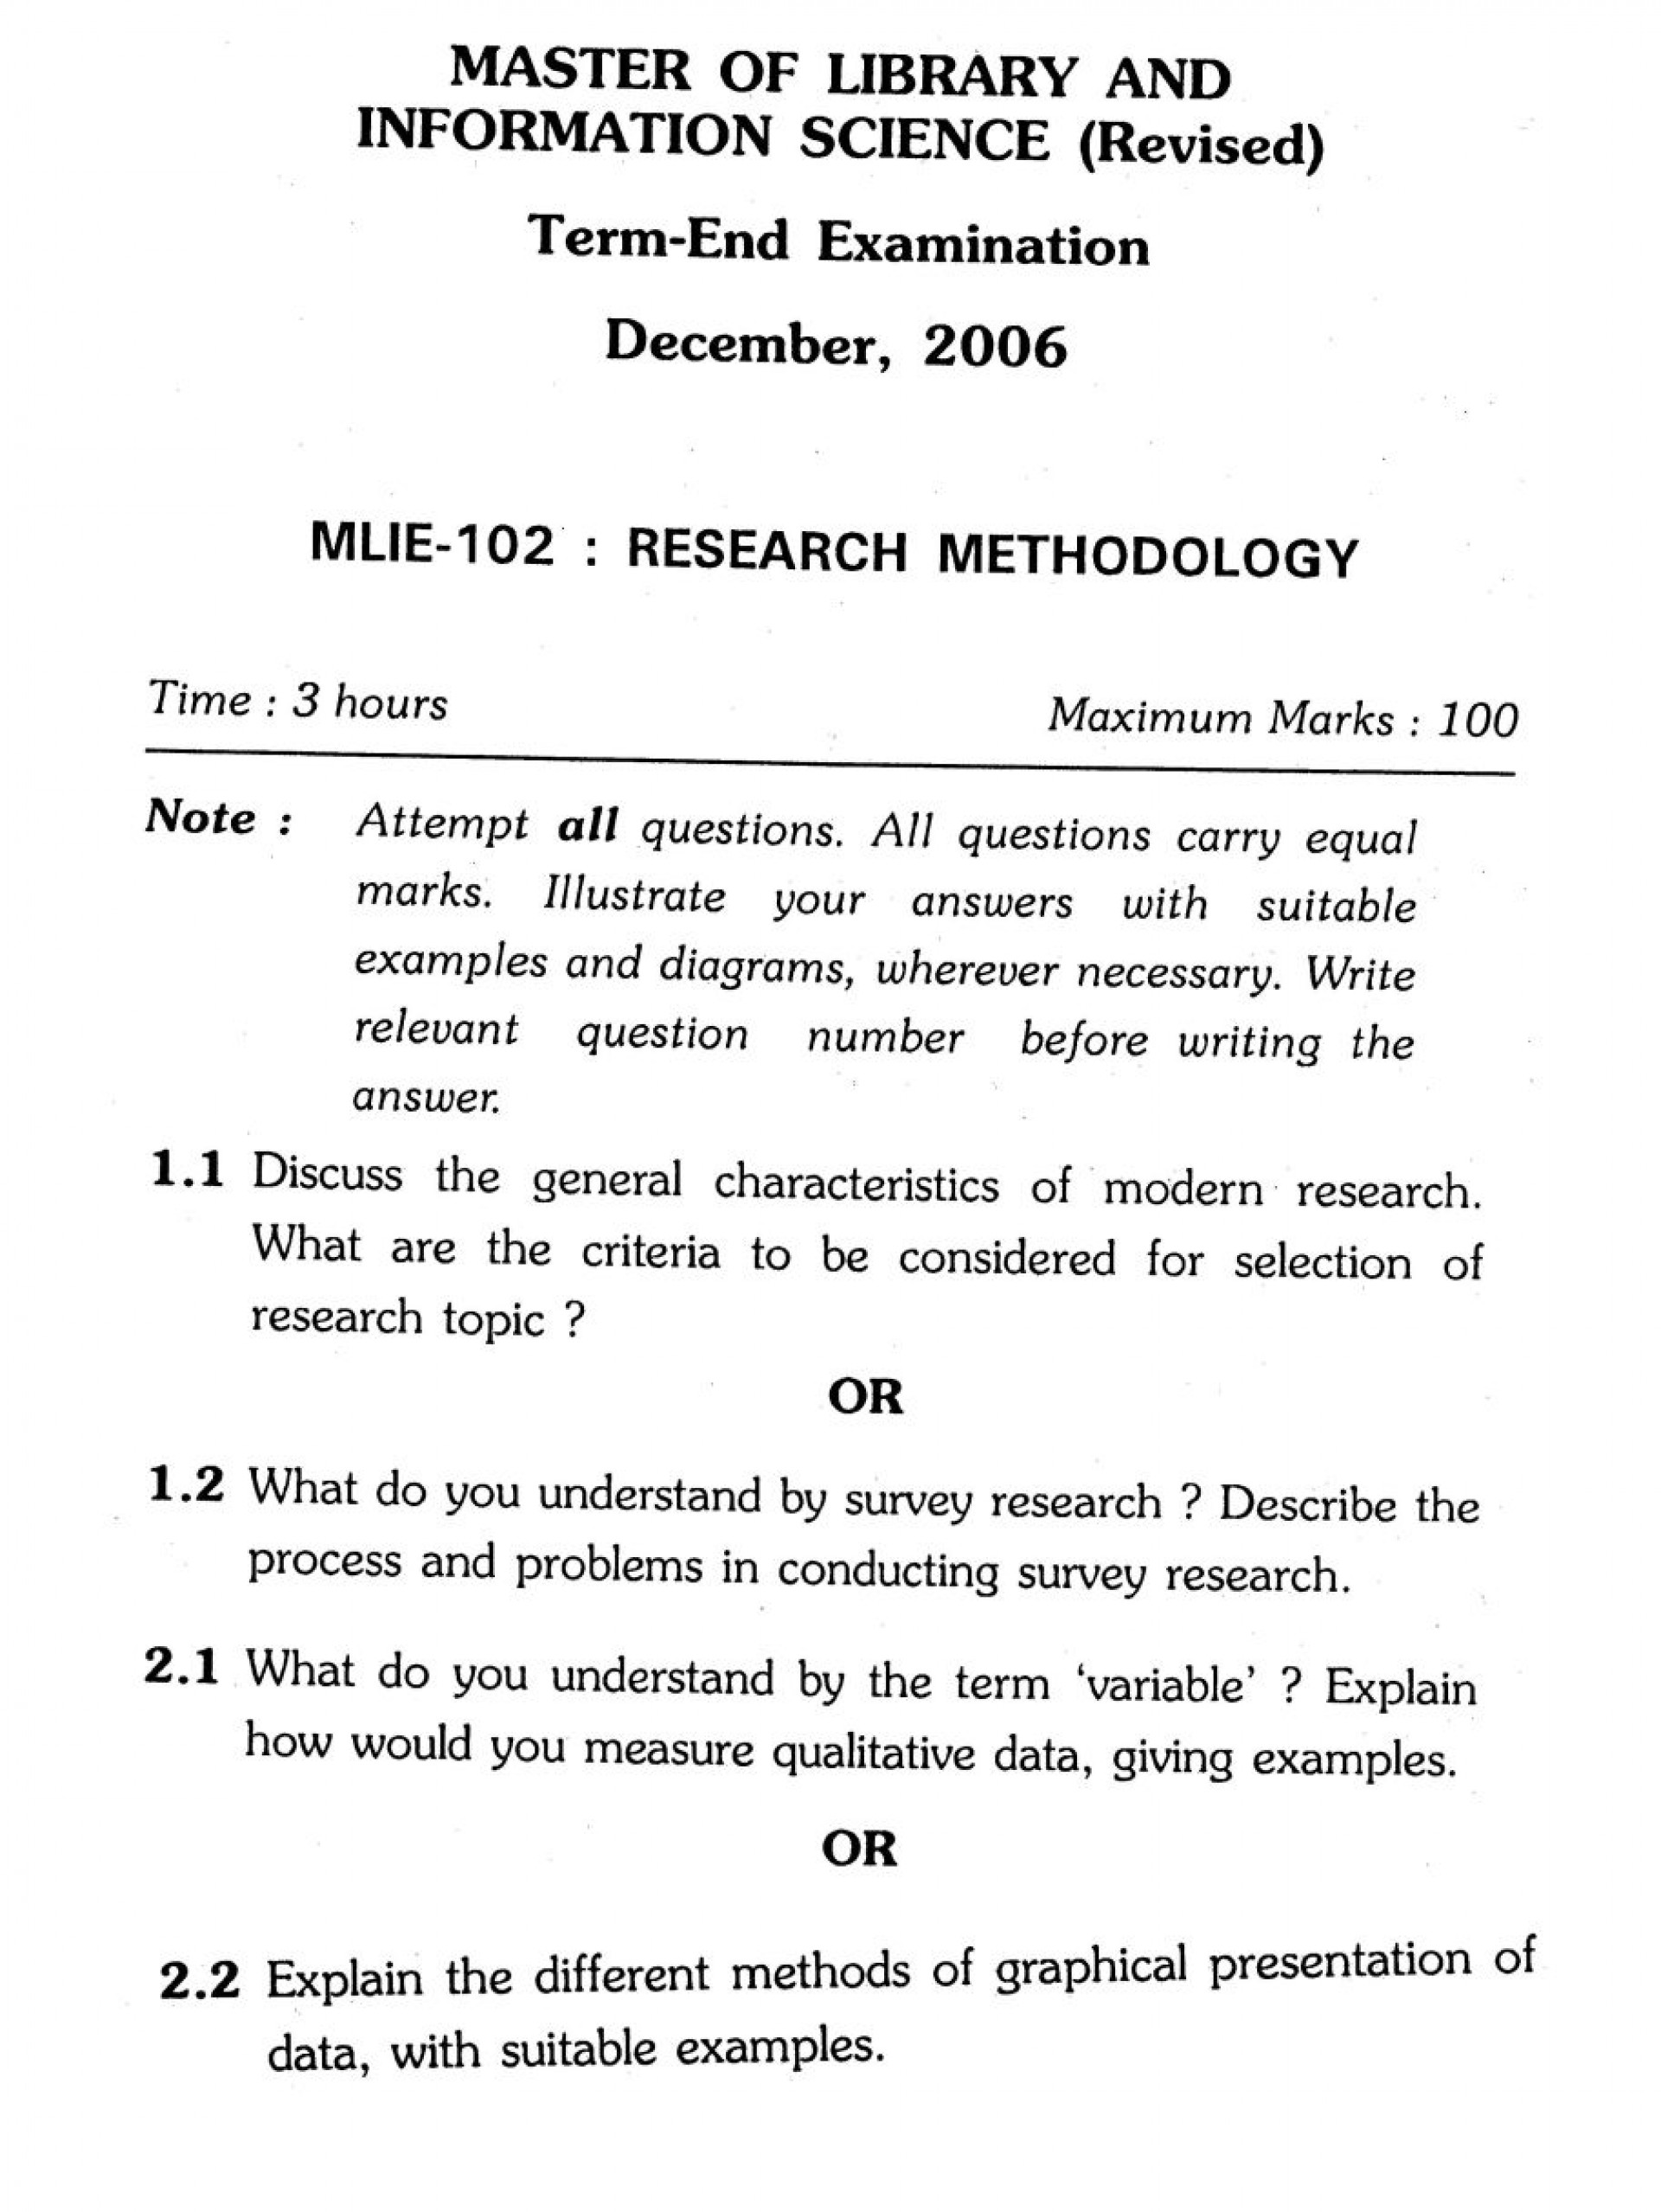 008 Ignou Master Of Library And Information Science Research Methodology Previous Years Questions Example For Unusual Paper In Quantitative Procedure Section A 1920